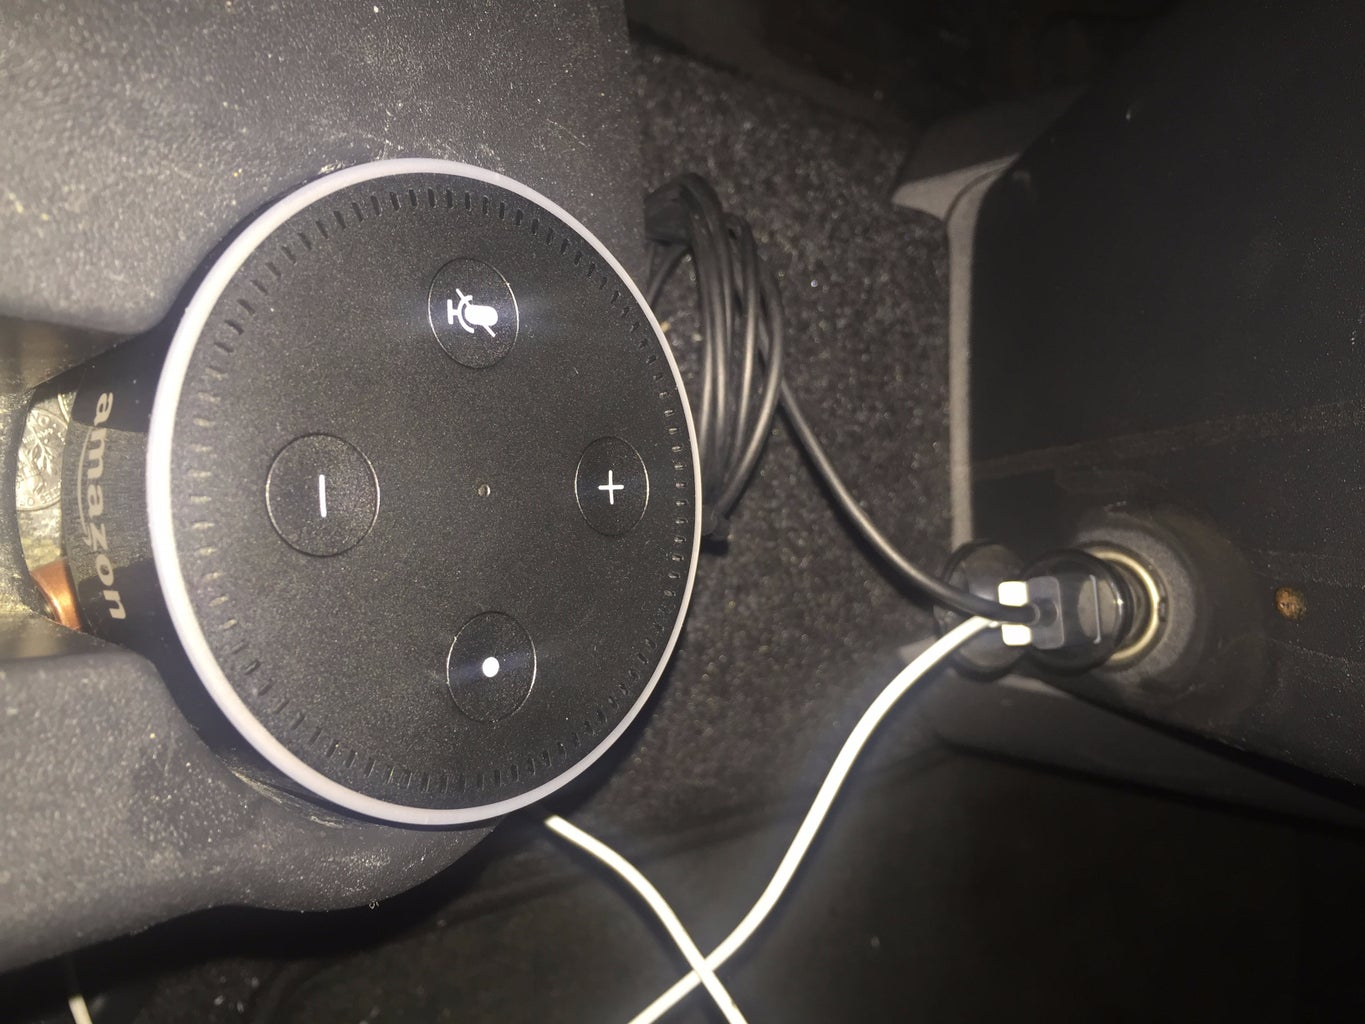 Install & Connect the Echo Dot to the Internet